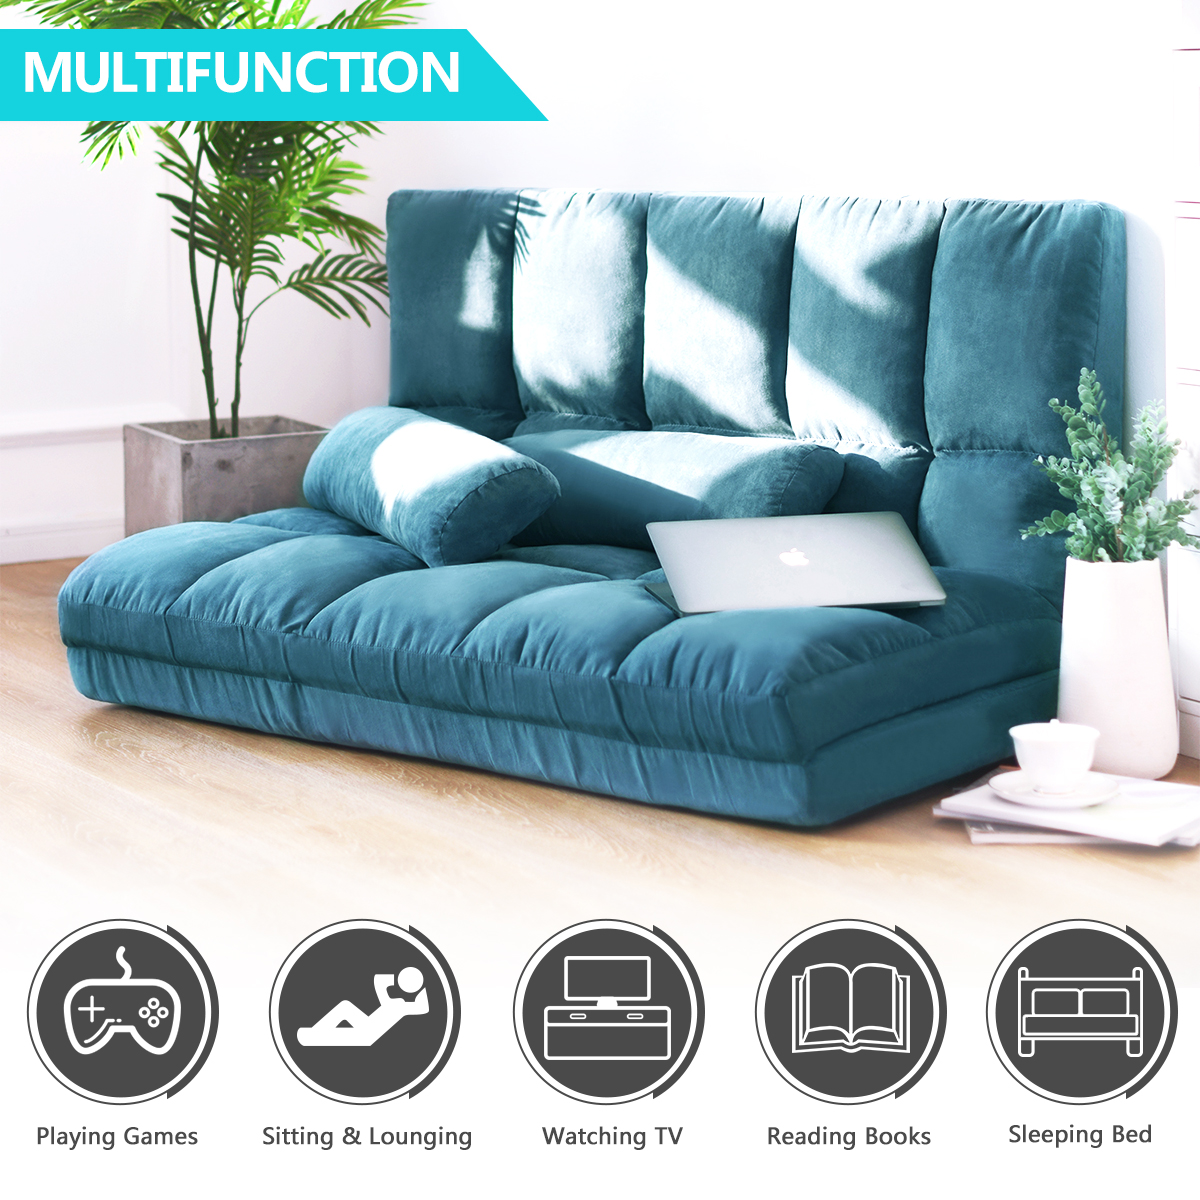 Double Chaise Lounge Sofa Chair Floor Couch Multi